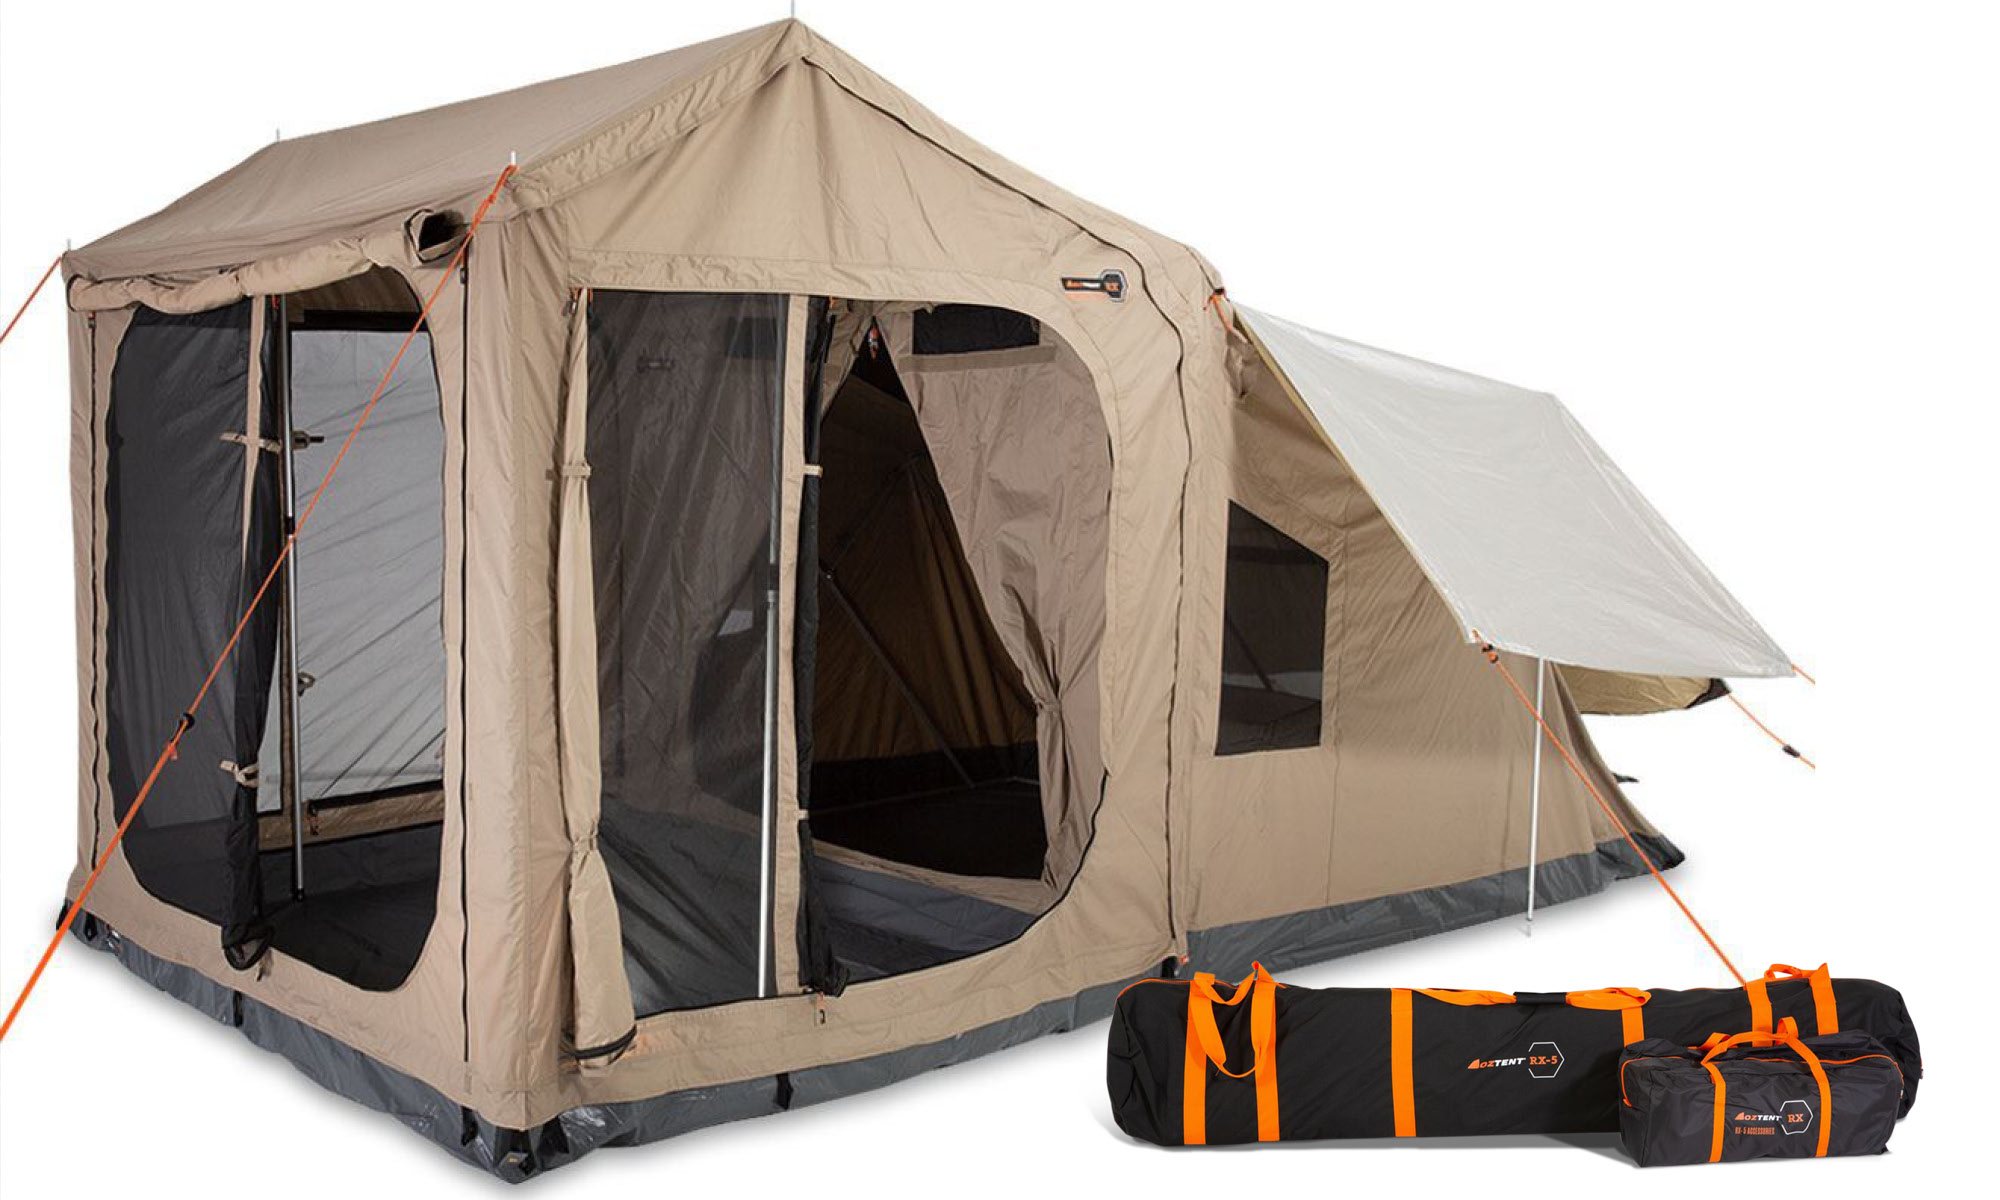 OzTent RX-5